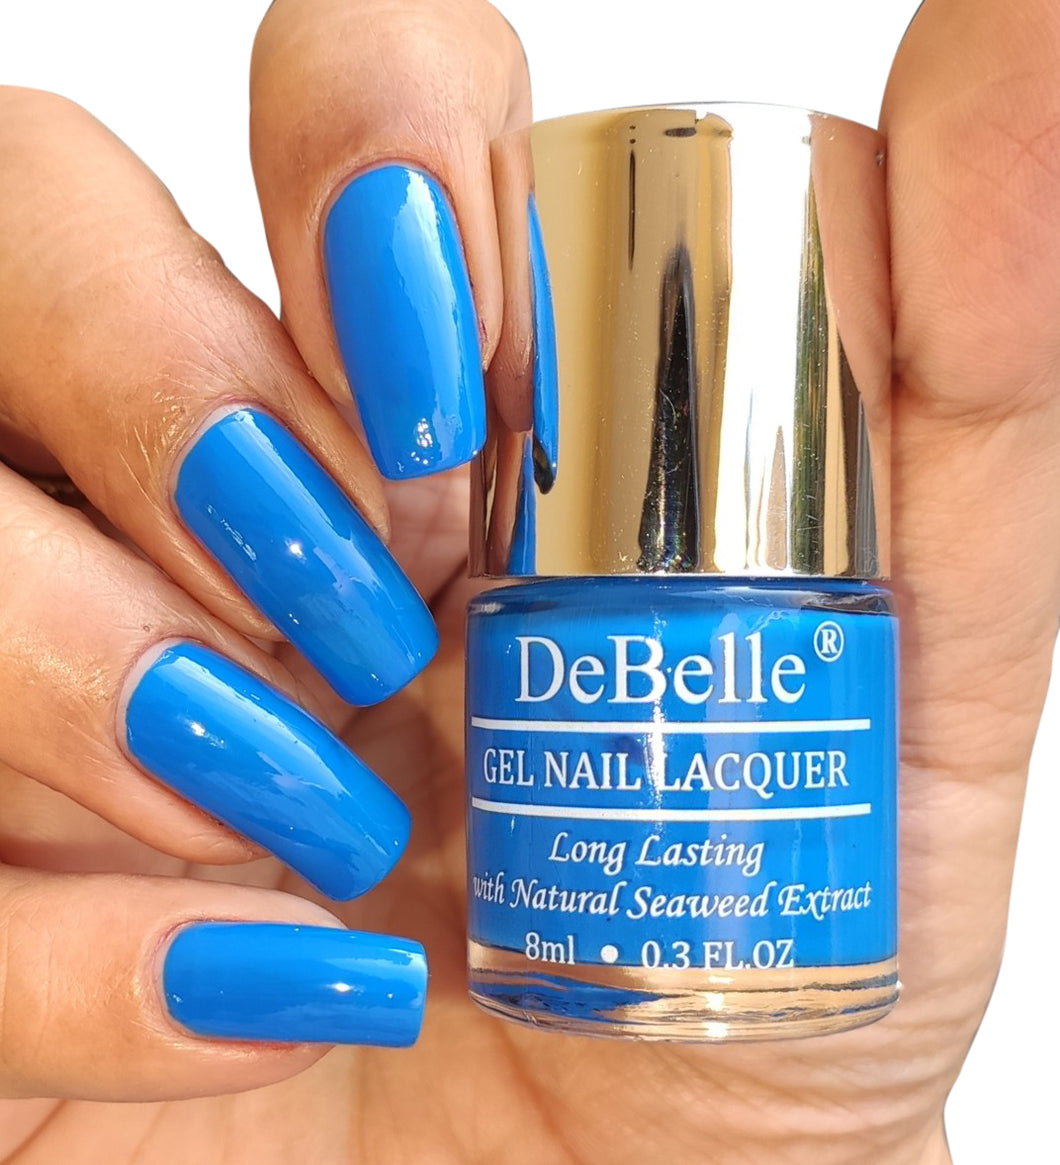 DeBelle Bright Blue Nail Polish Swatch